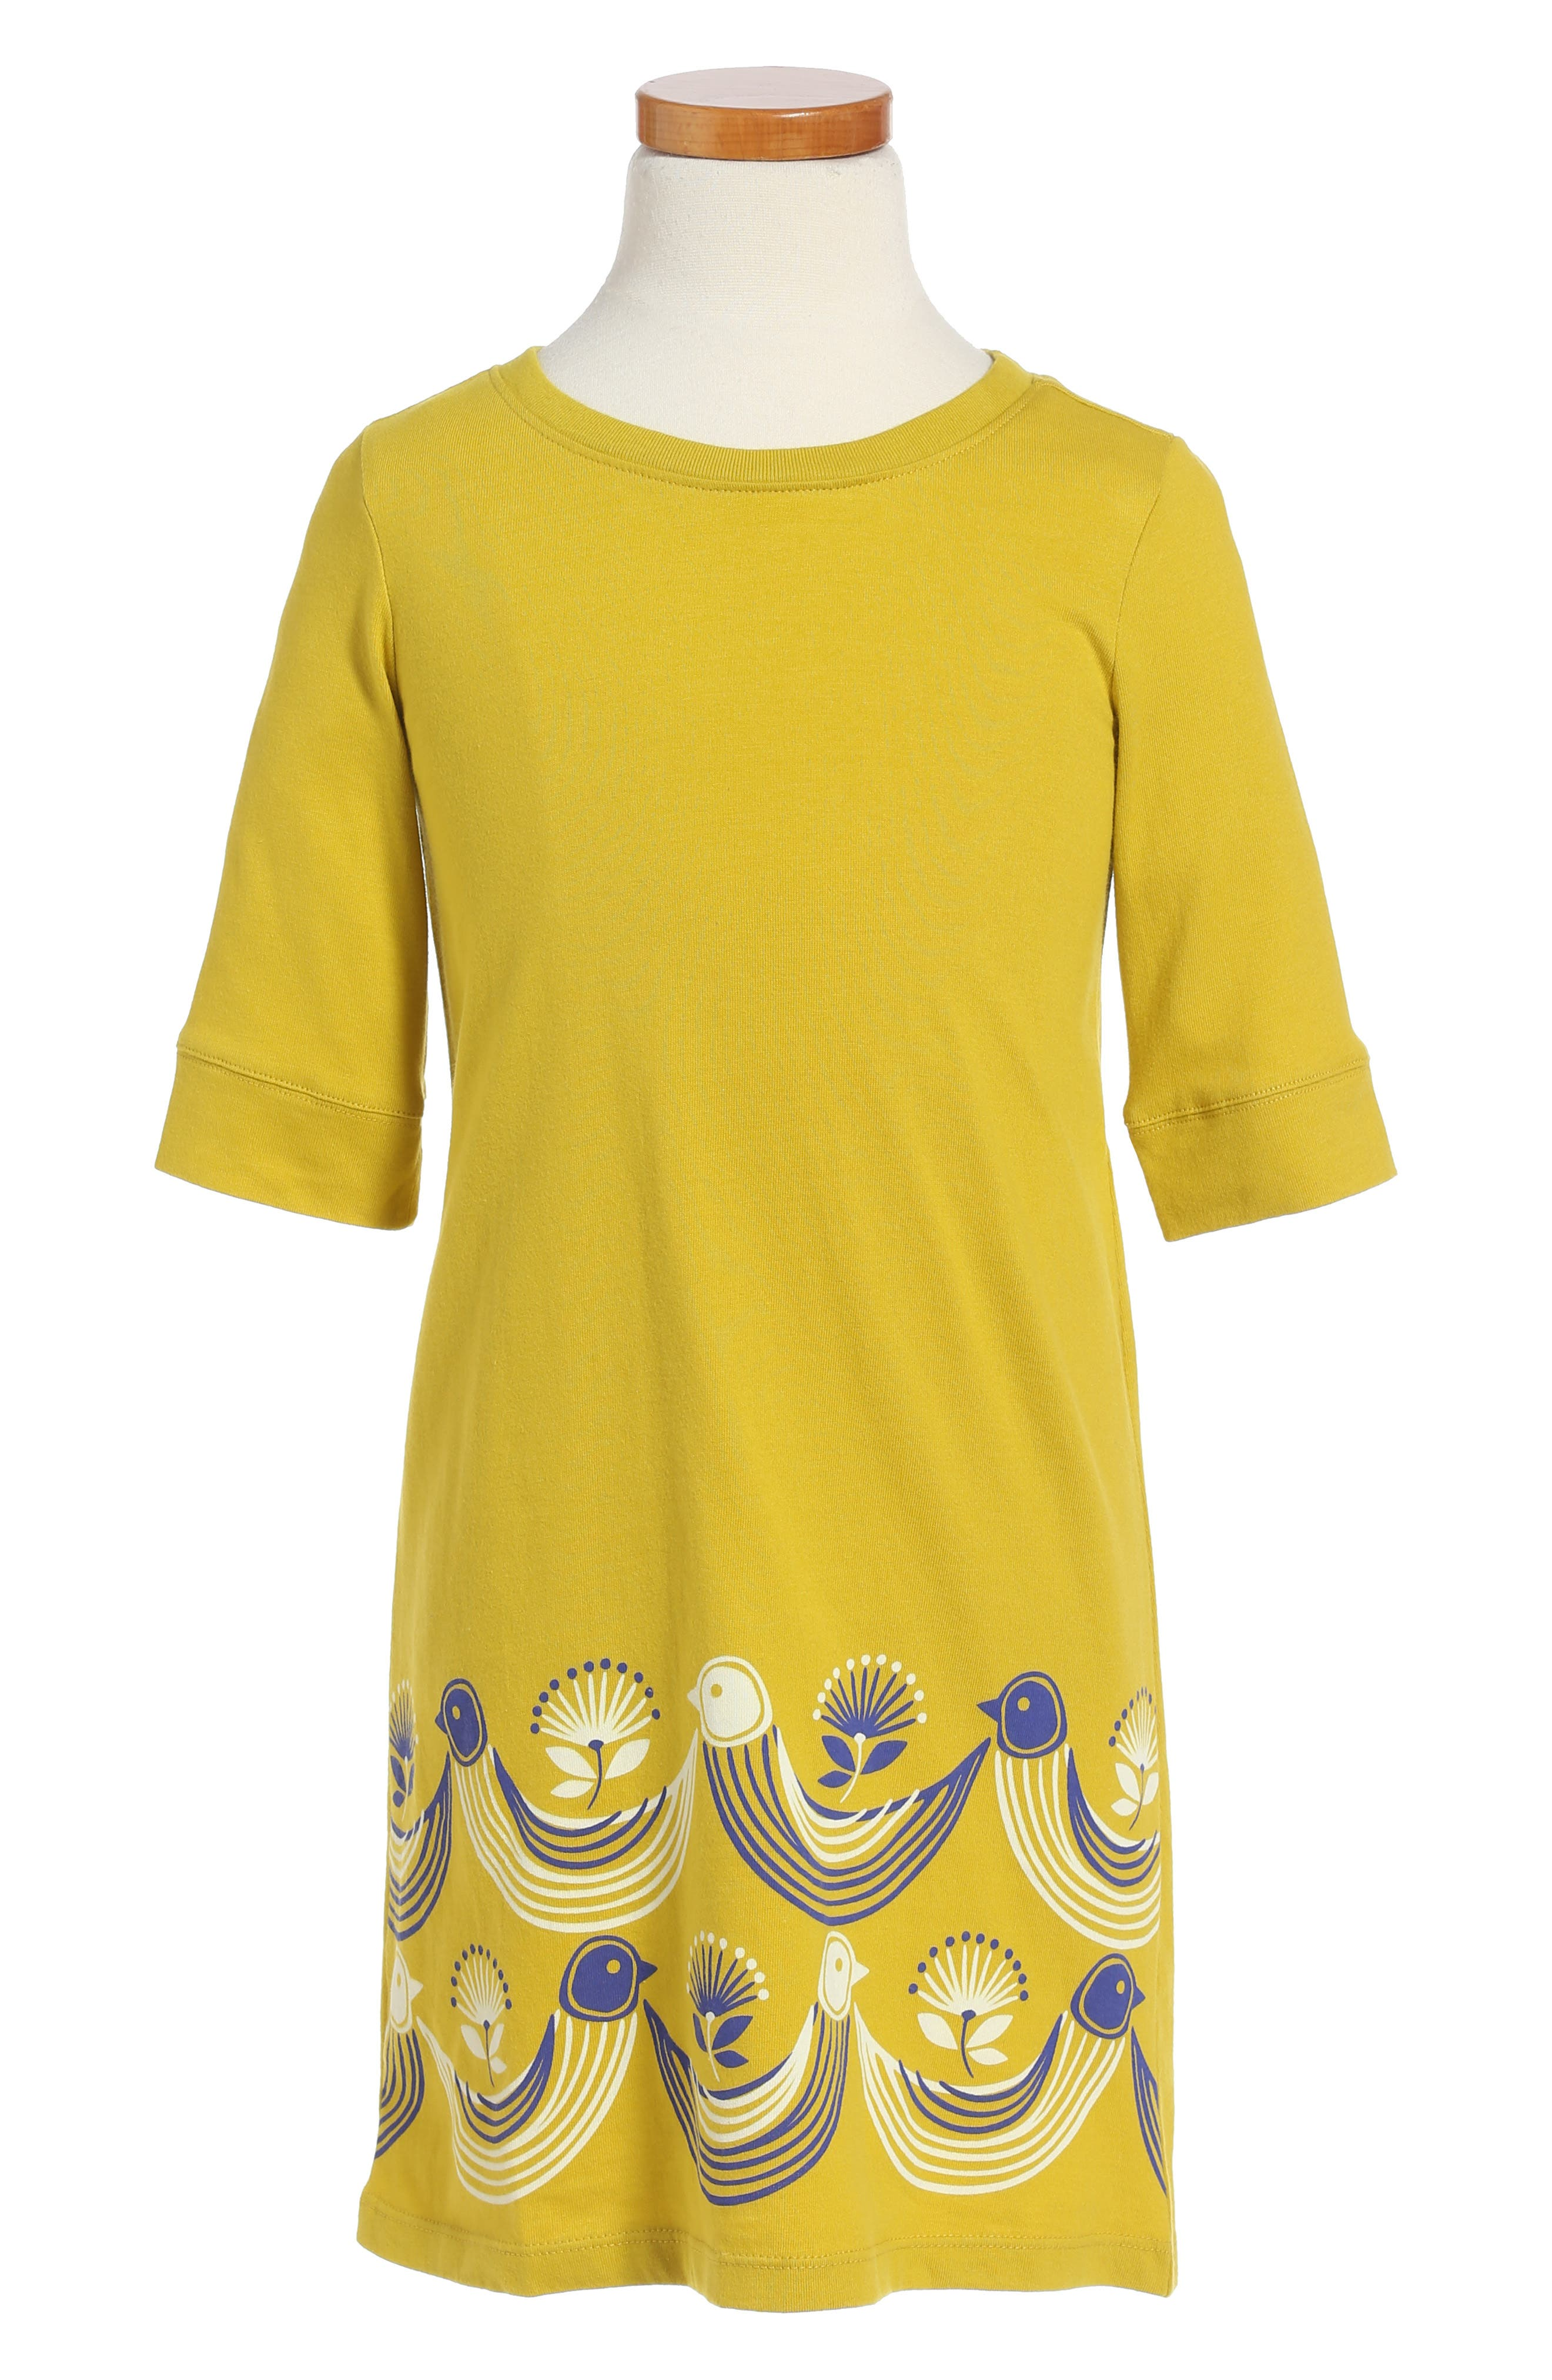 Tea Collection Iona Graphic Dress (Toddler Girls, Little Girls & Big Girls)